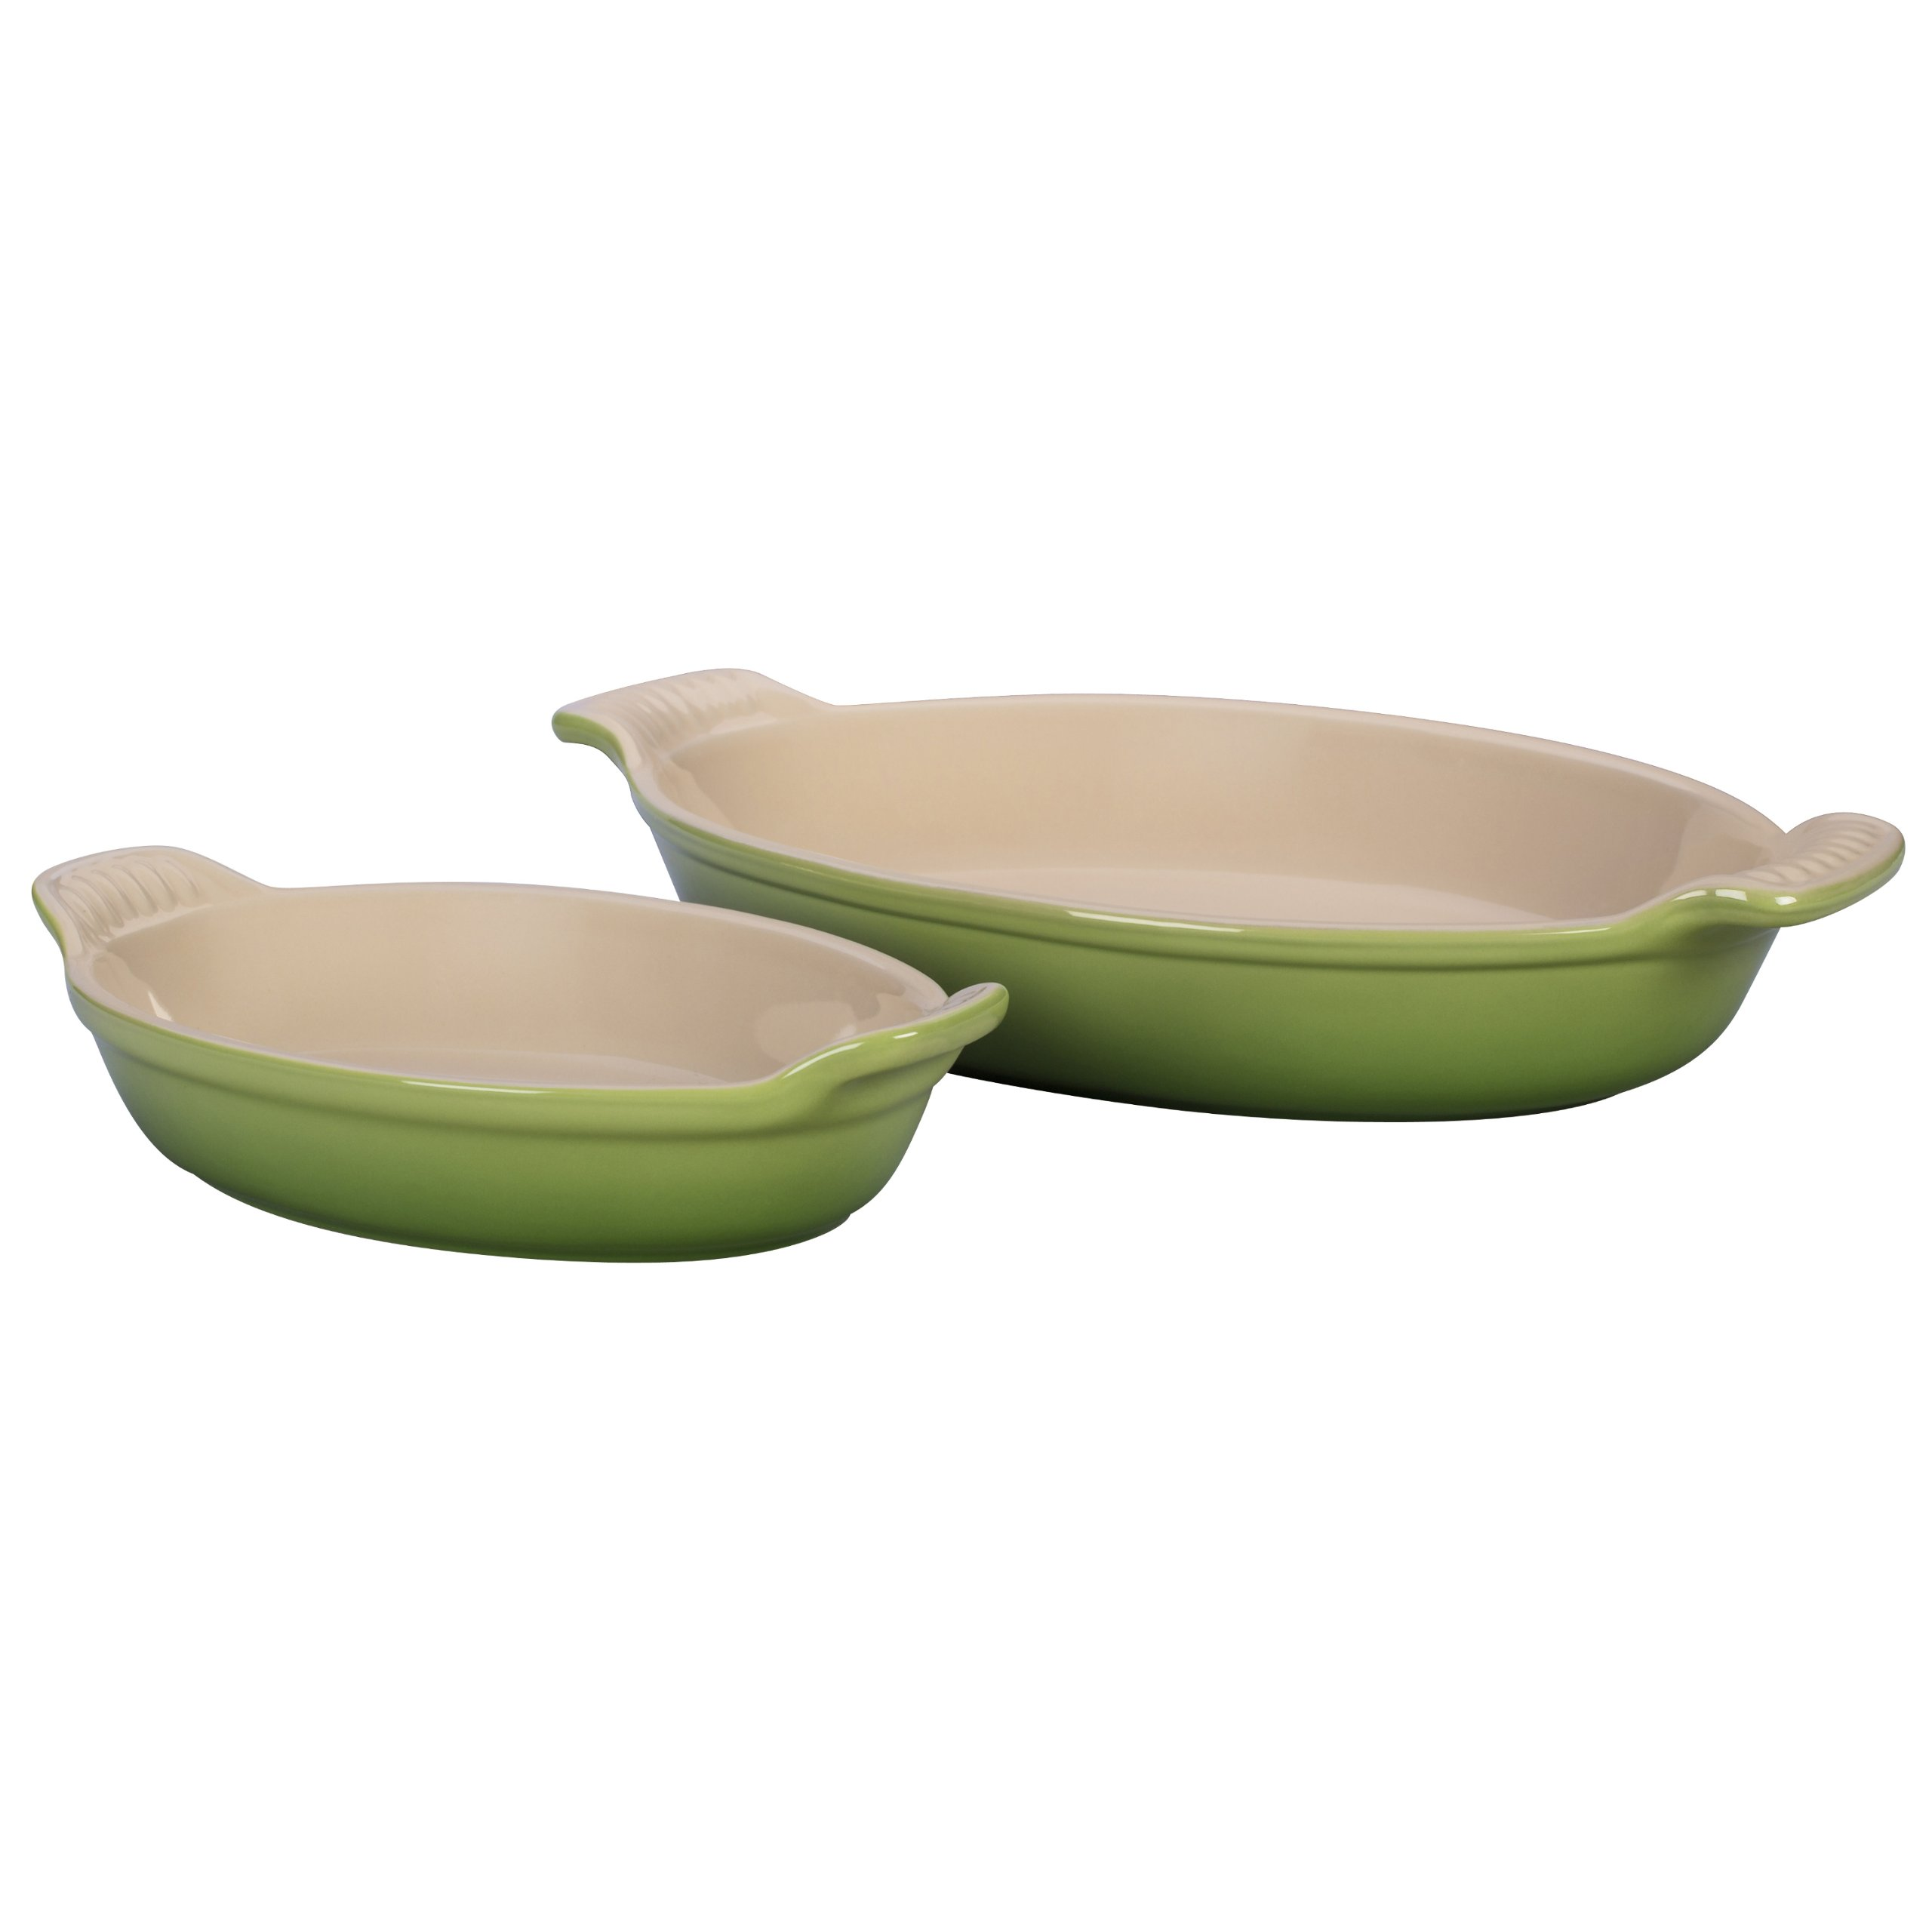 Le Creuset Stoneware Heritage Oval Au Gratin Dishes, Palm, Set of 2